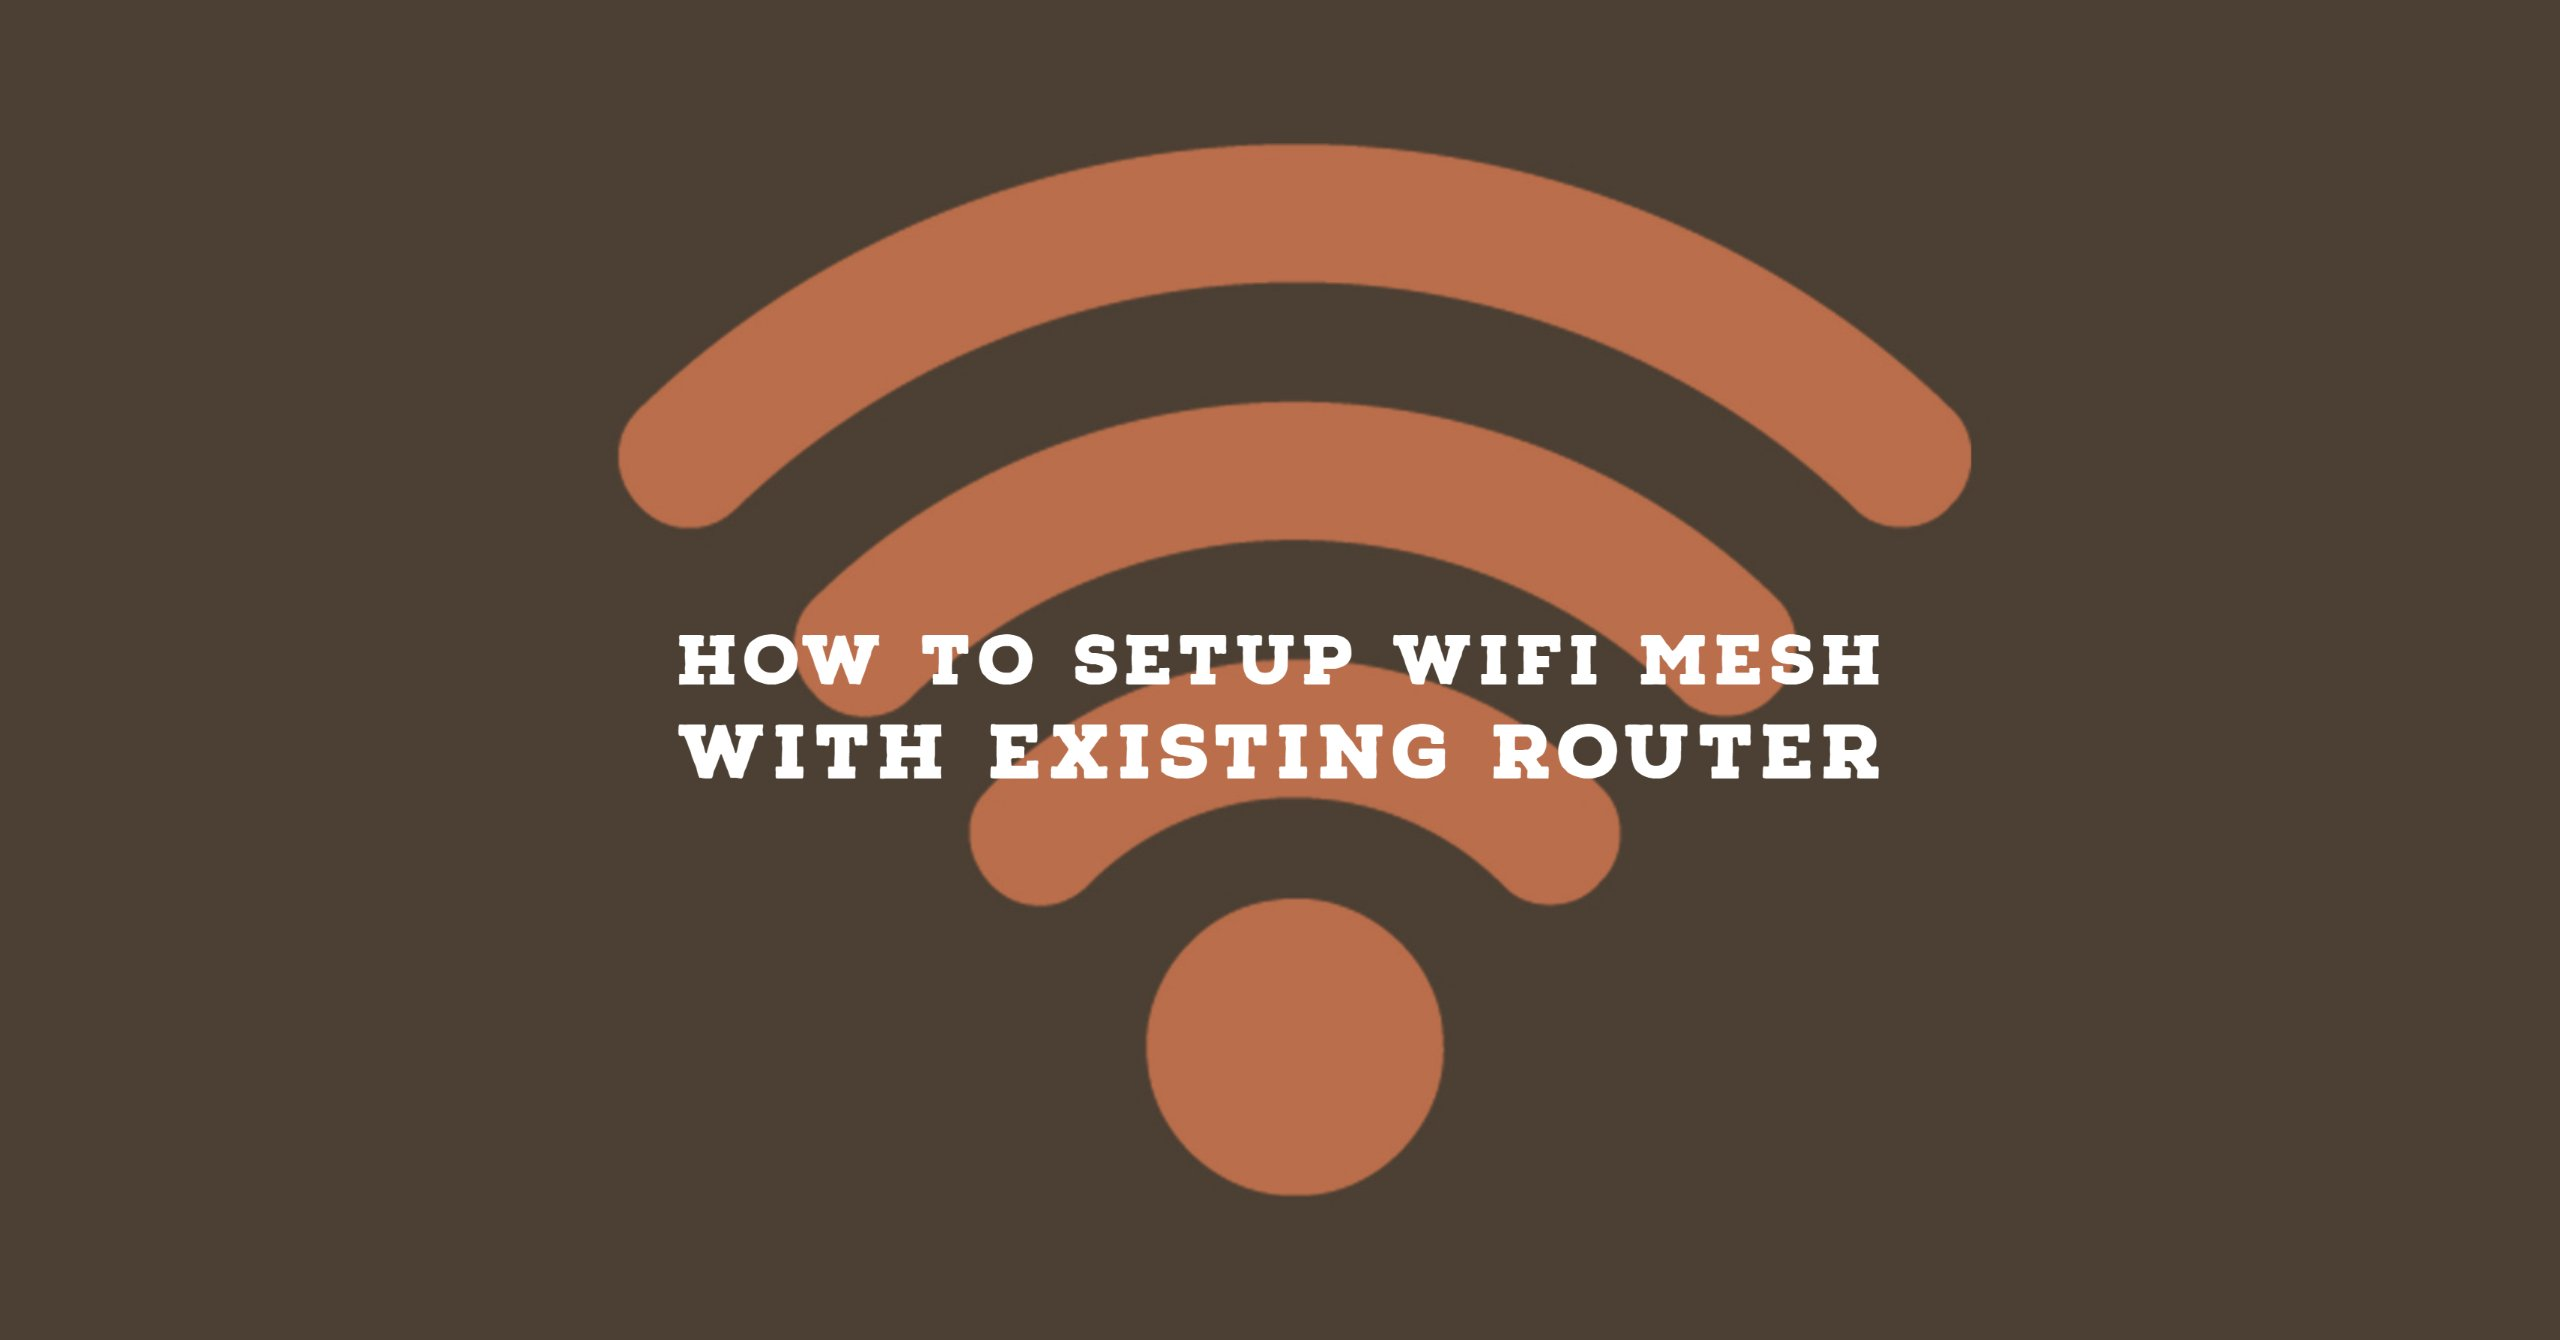 How to setup WiFi mesh with existing router